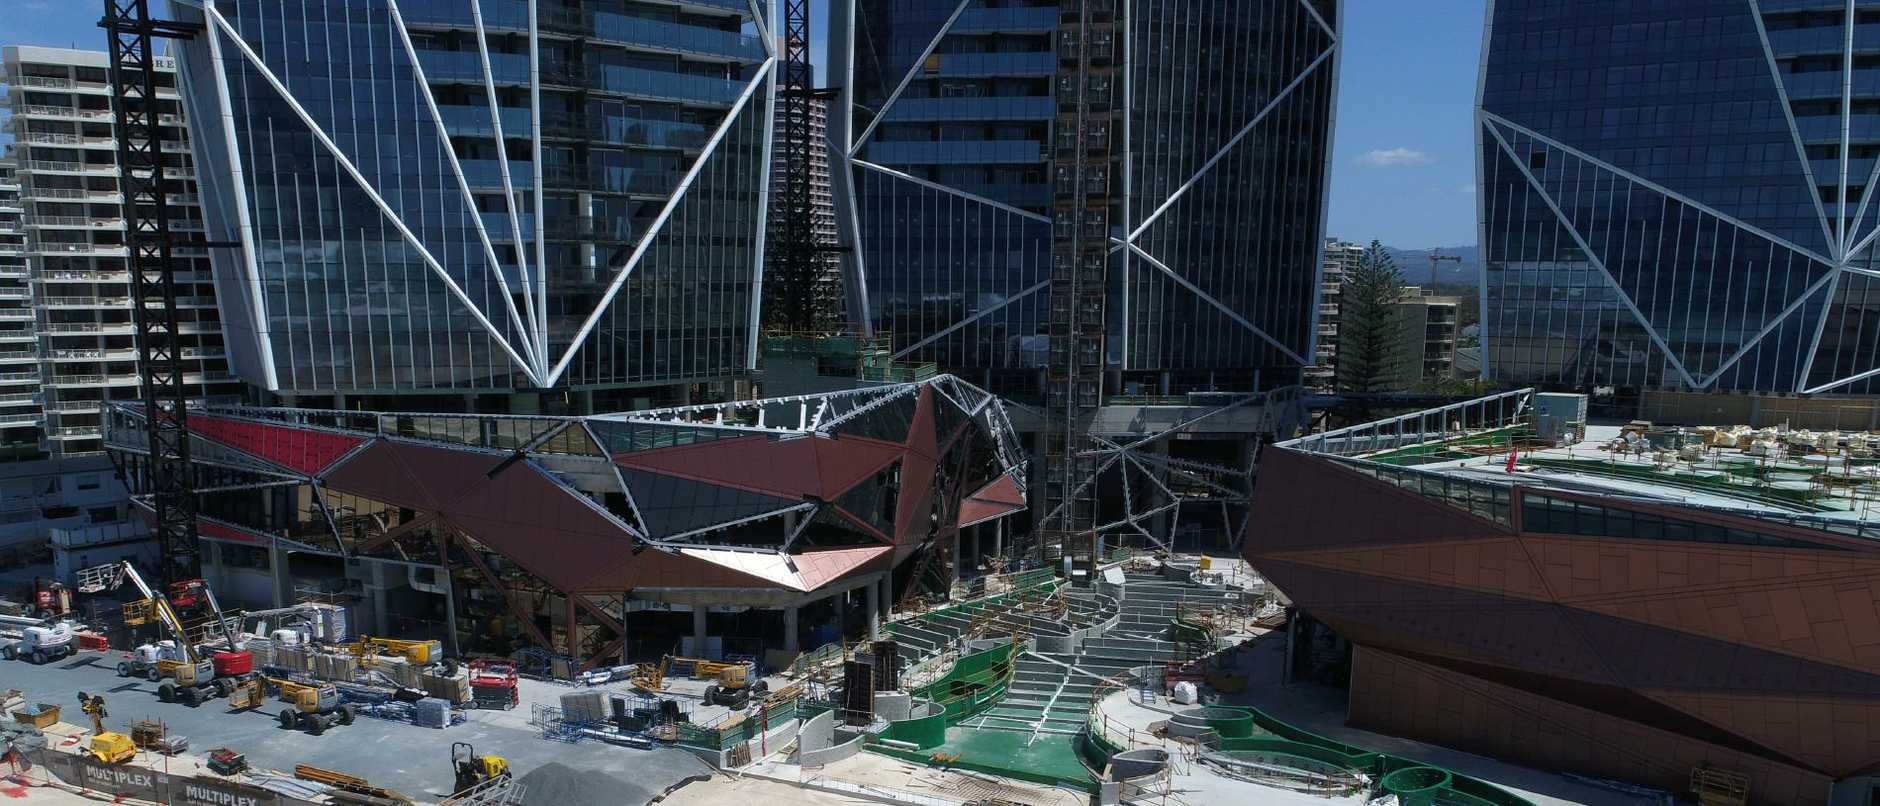 Developer Yuhu Group has consistently said it wants to finish the hotel and apartment towers with beach-edge pool and restaurant areas to the highest standard. Picture Glenn Hampson